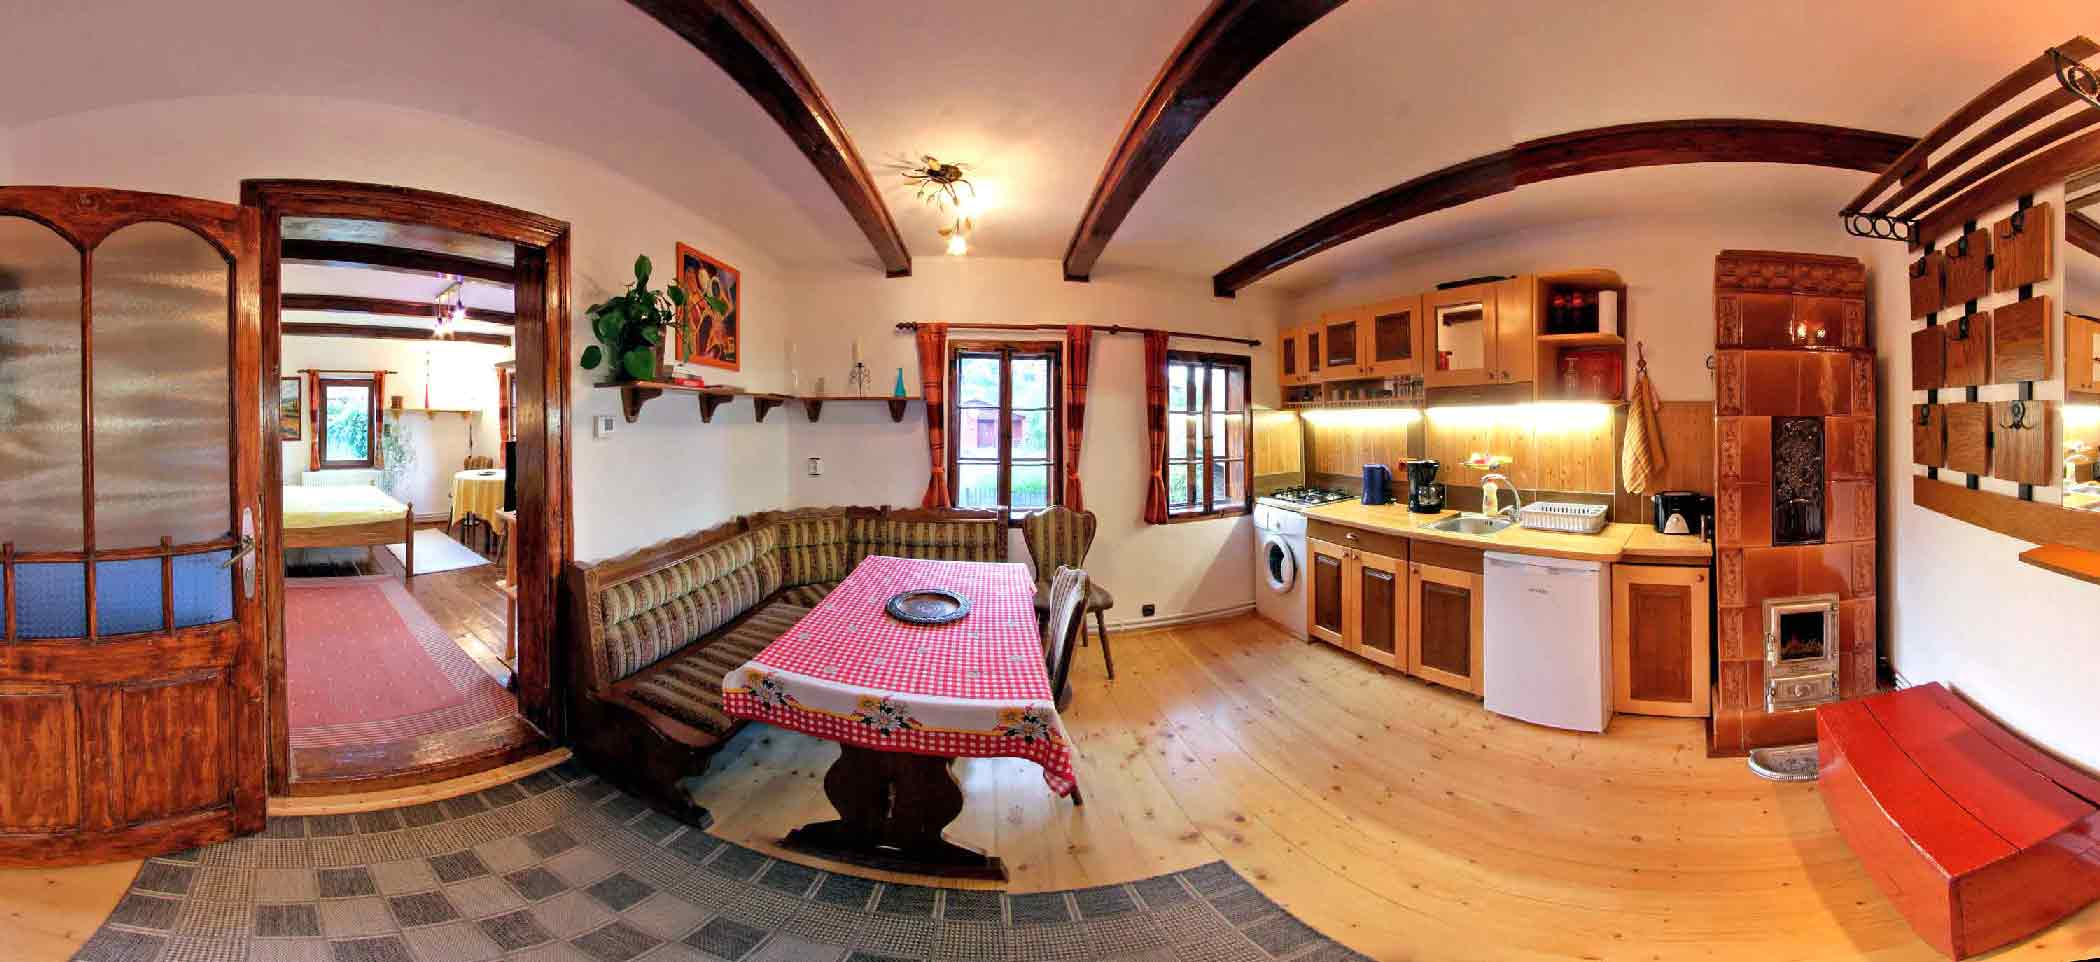 romania farm cottages | transylvania self catering country cottages to rent